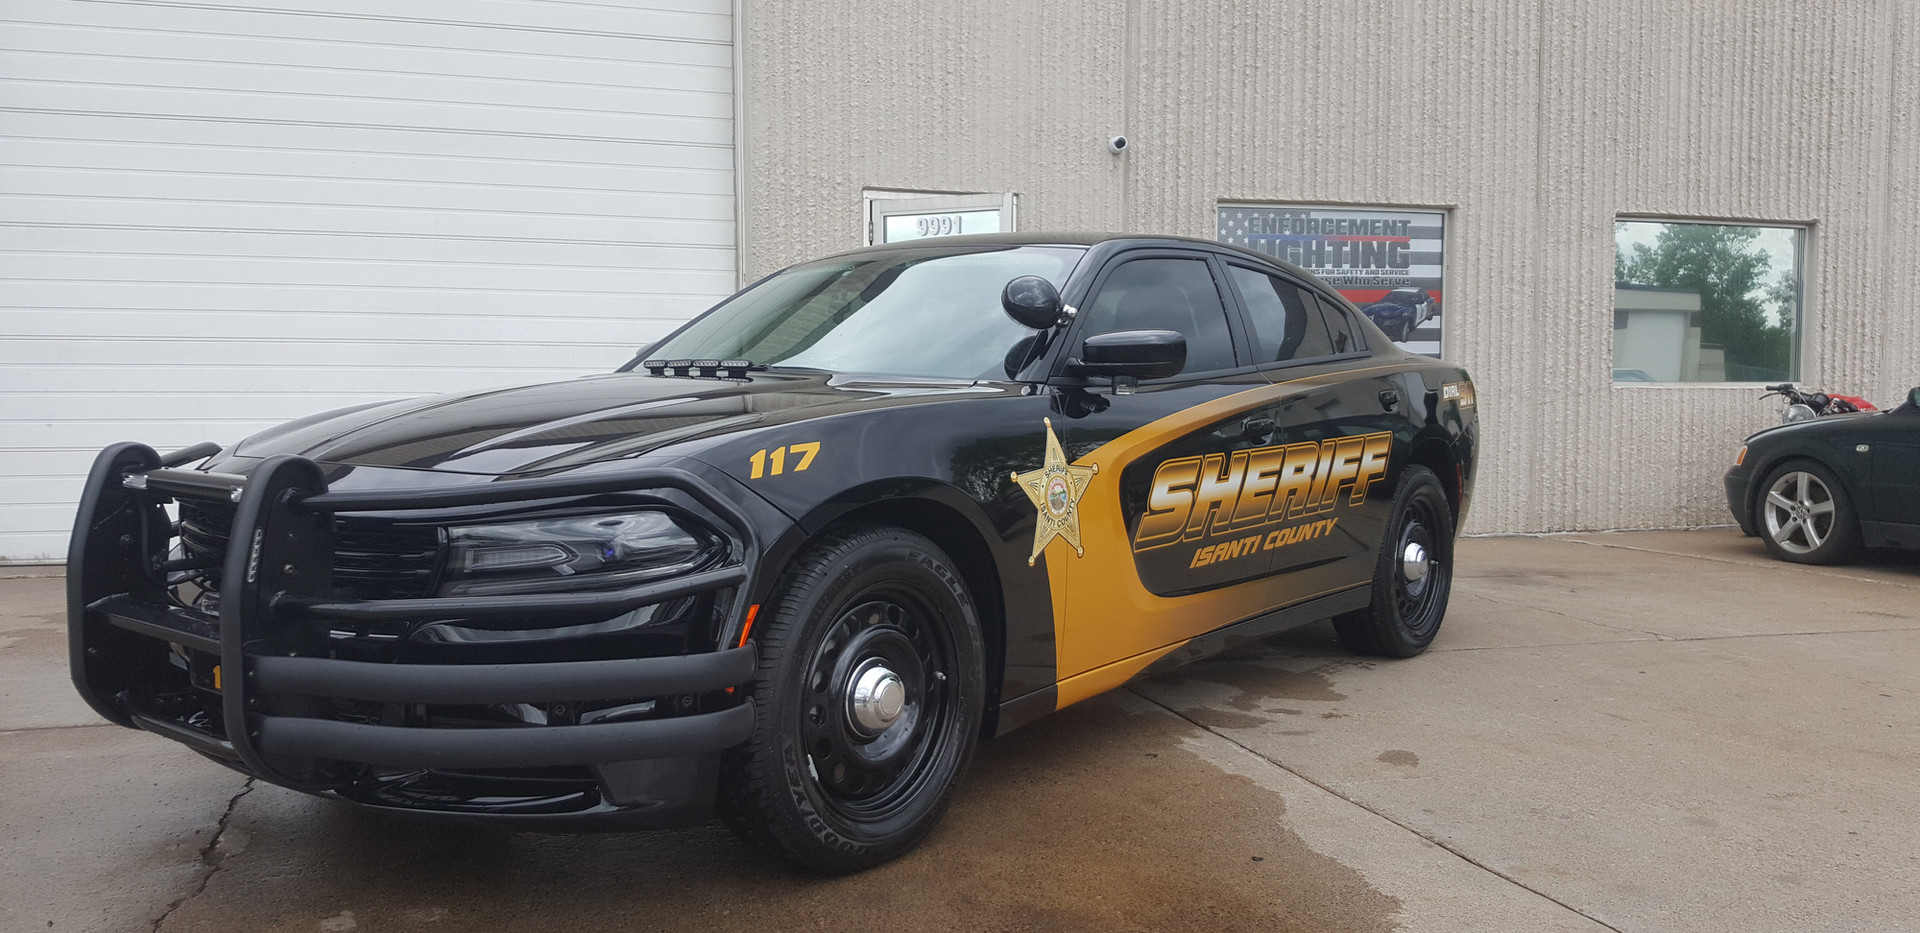 Isanti County Sheriff's Office 3.jpg